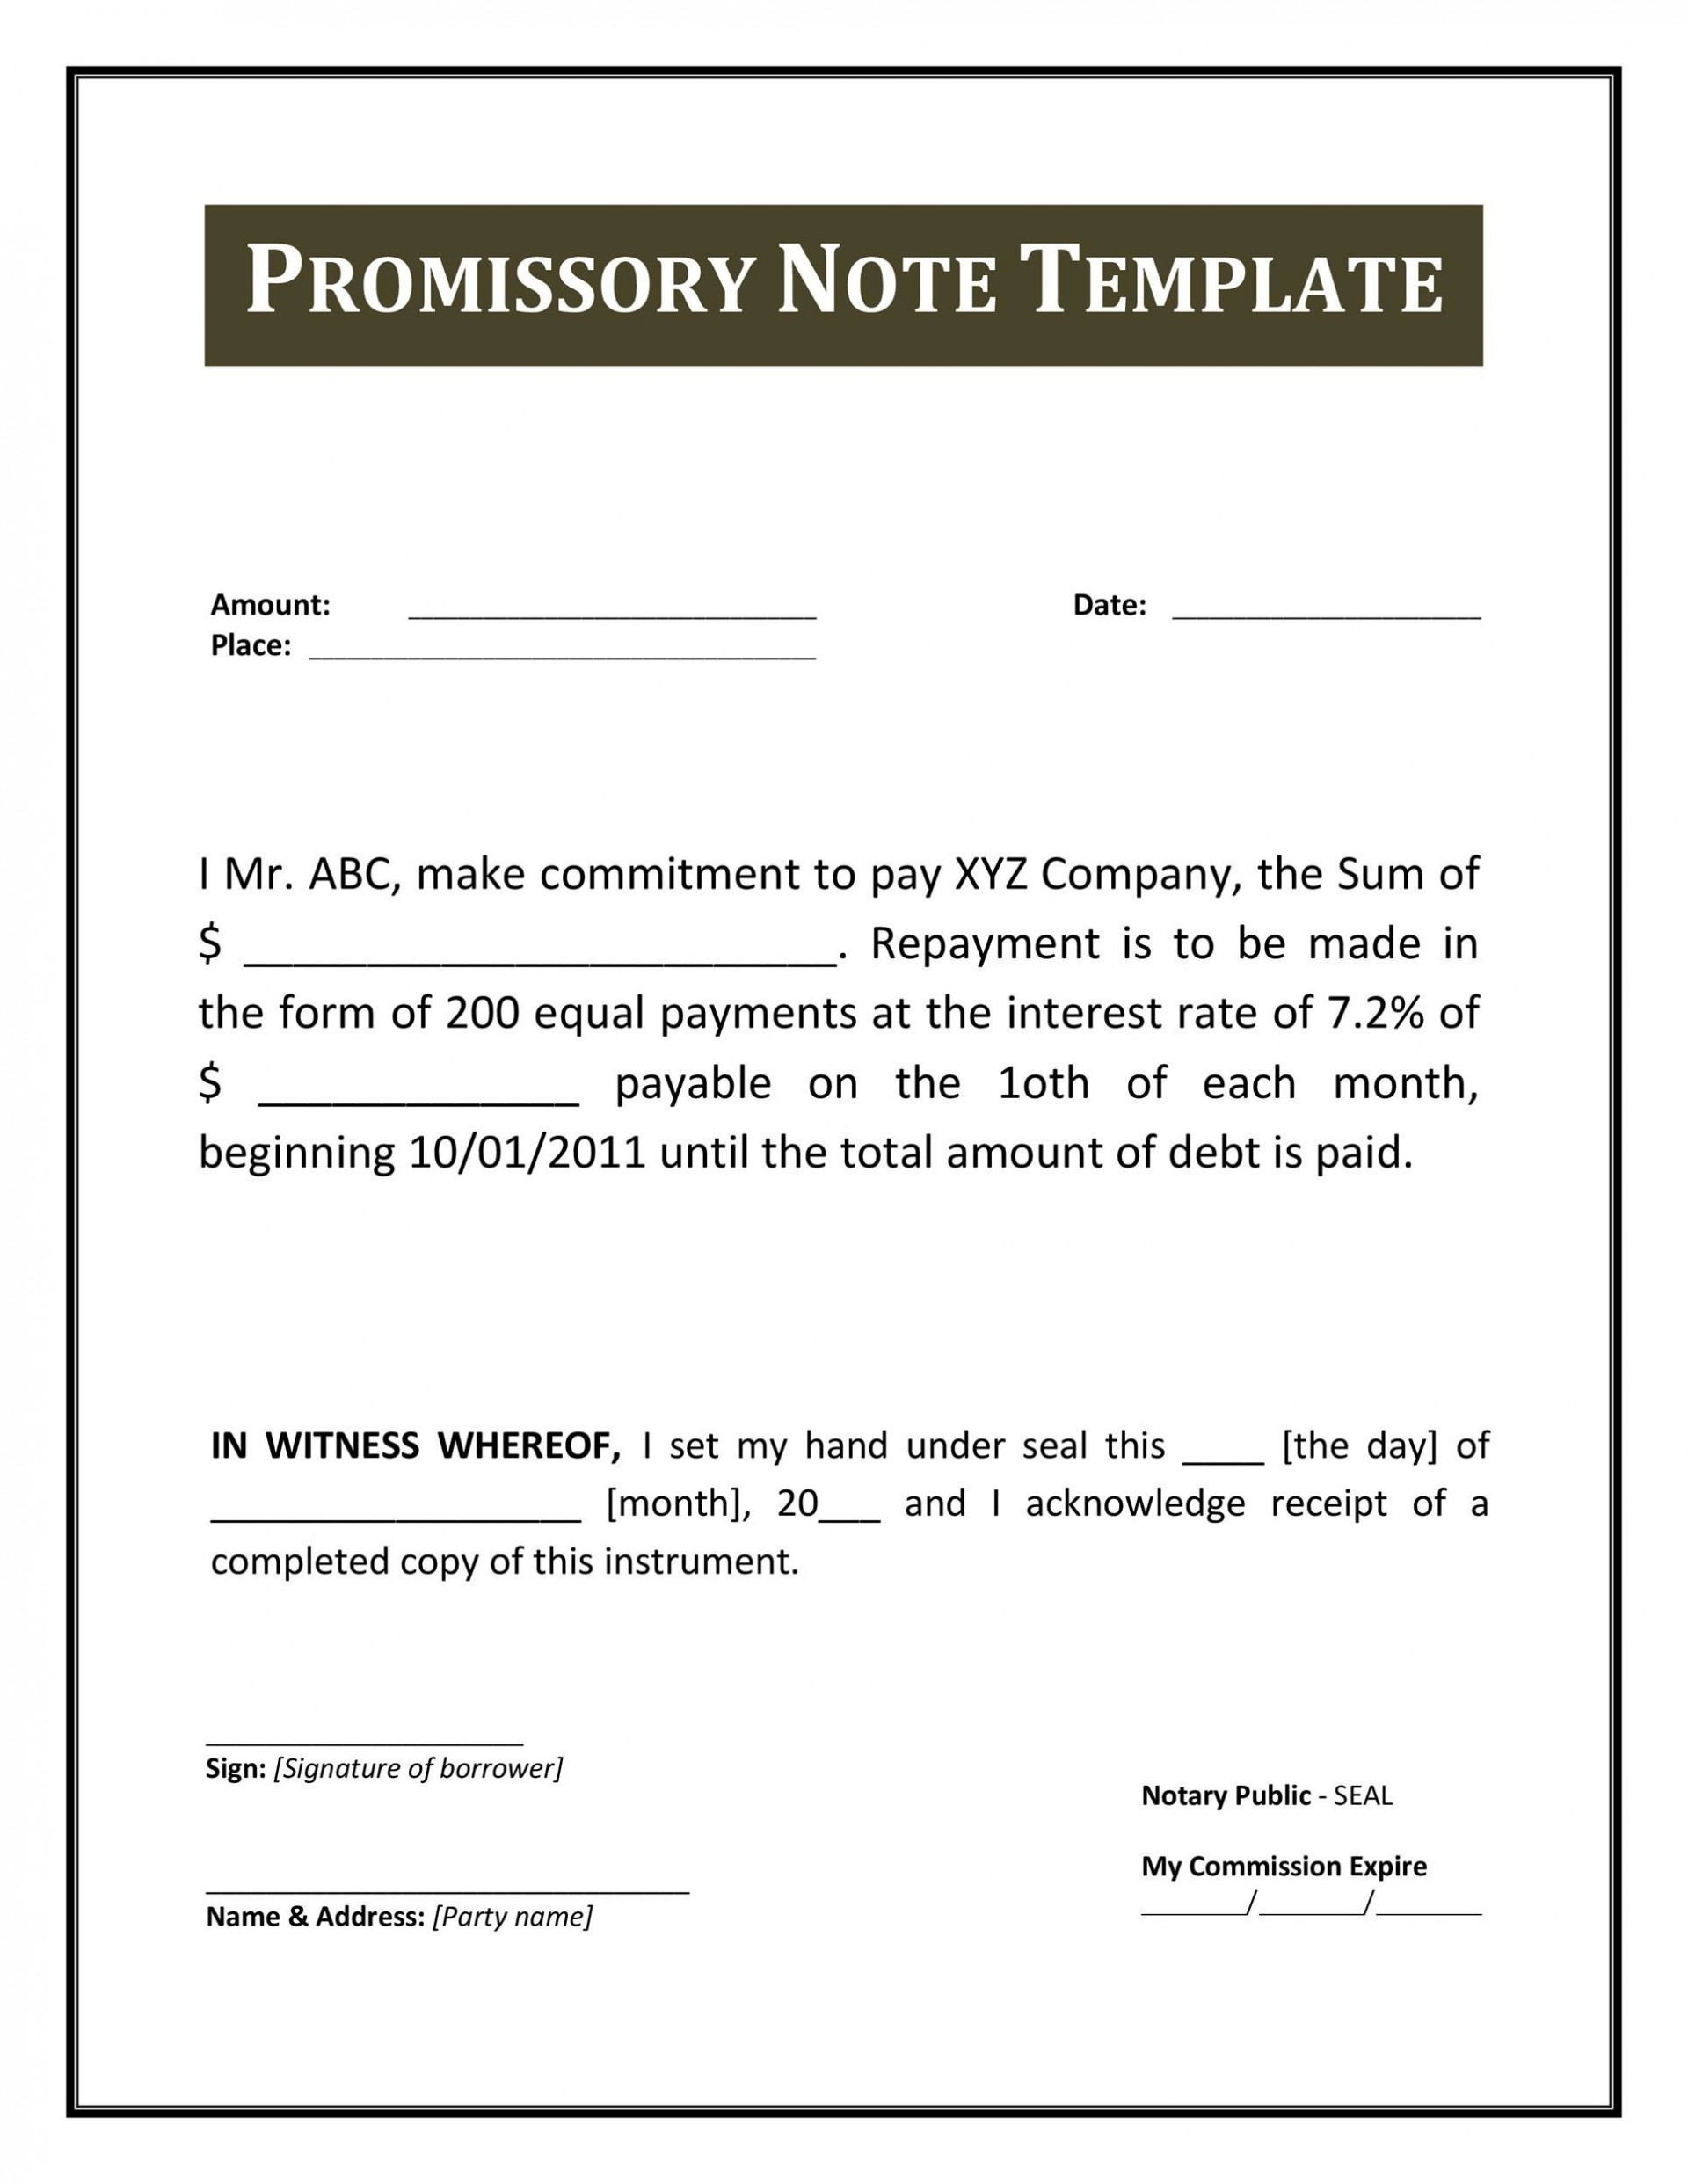 007 Dreaded Promissory Note Template Free High Resolution  Pdf Florida Blank Form1920